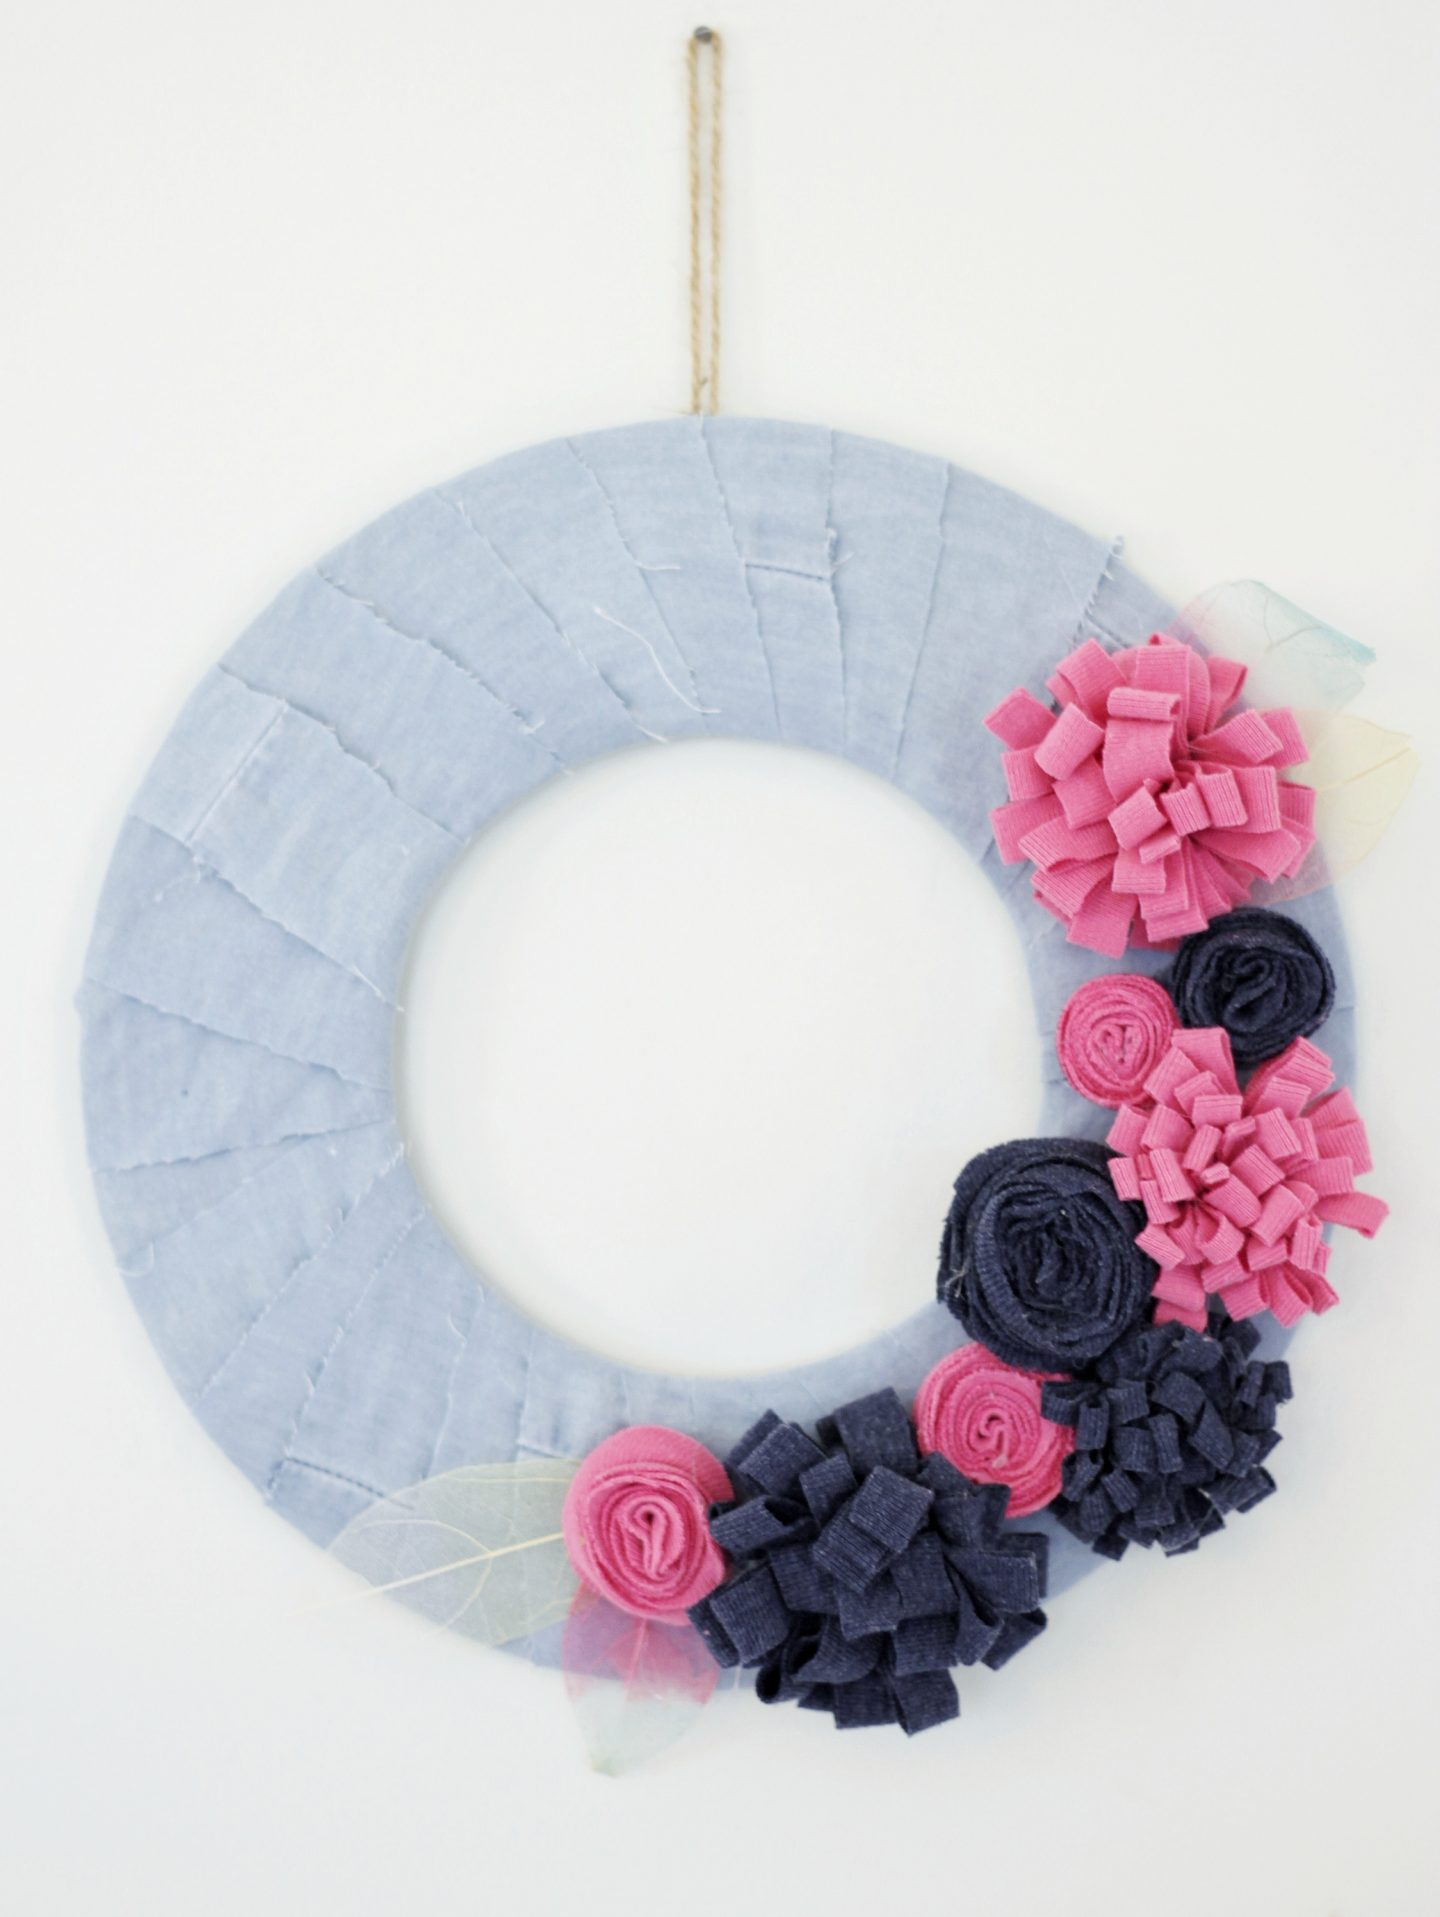 Finished summer flower wreath with recycled clothes